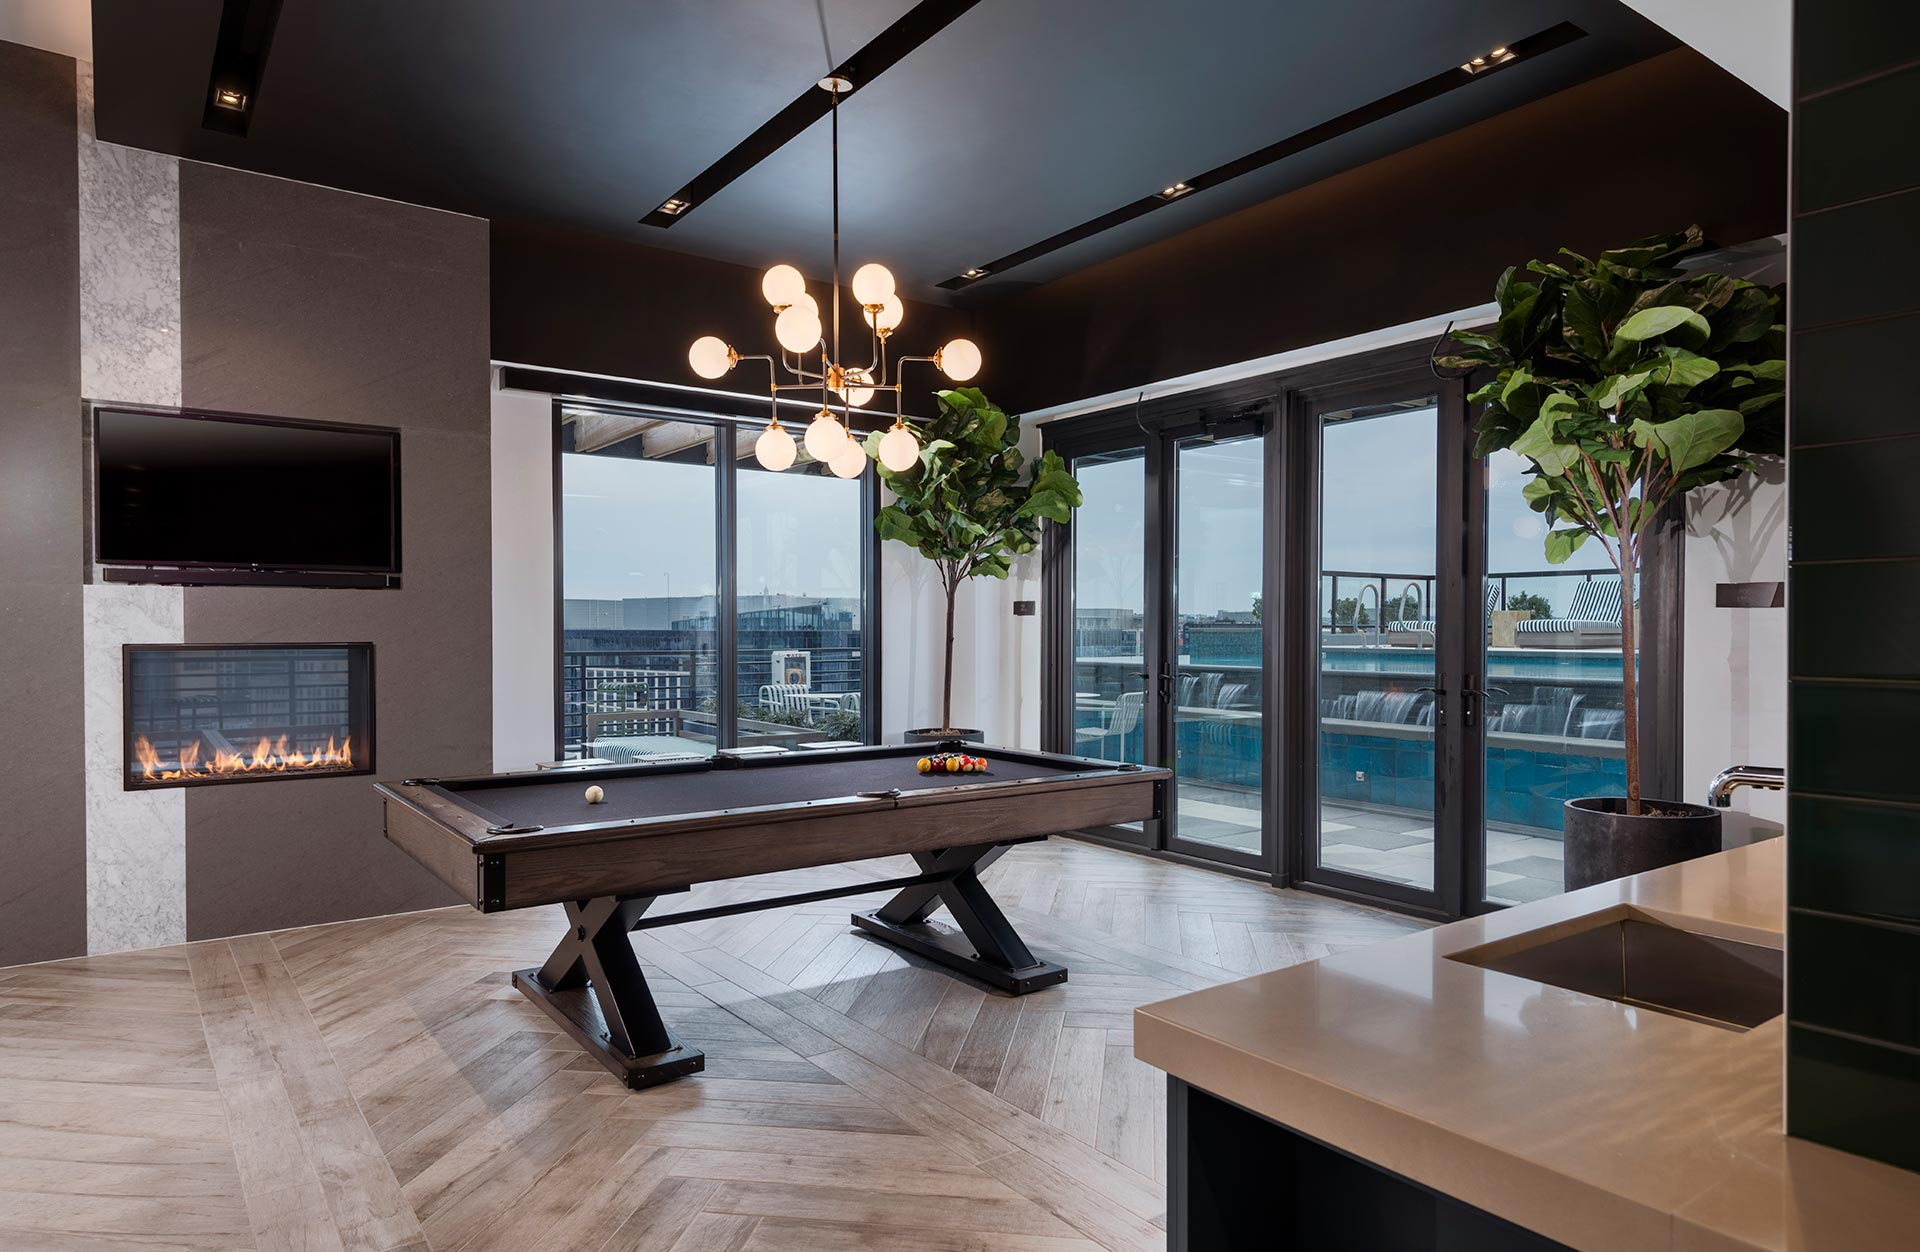 billiards table next to fireplace and television